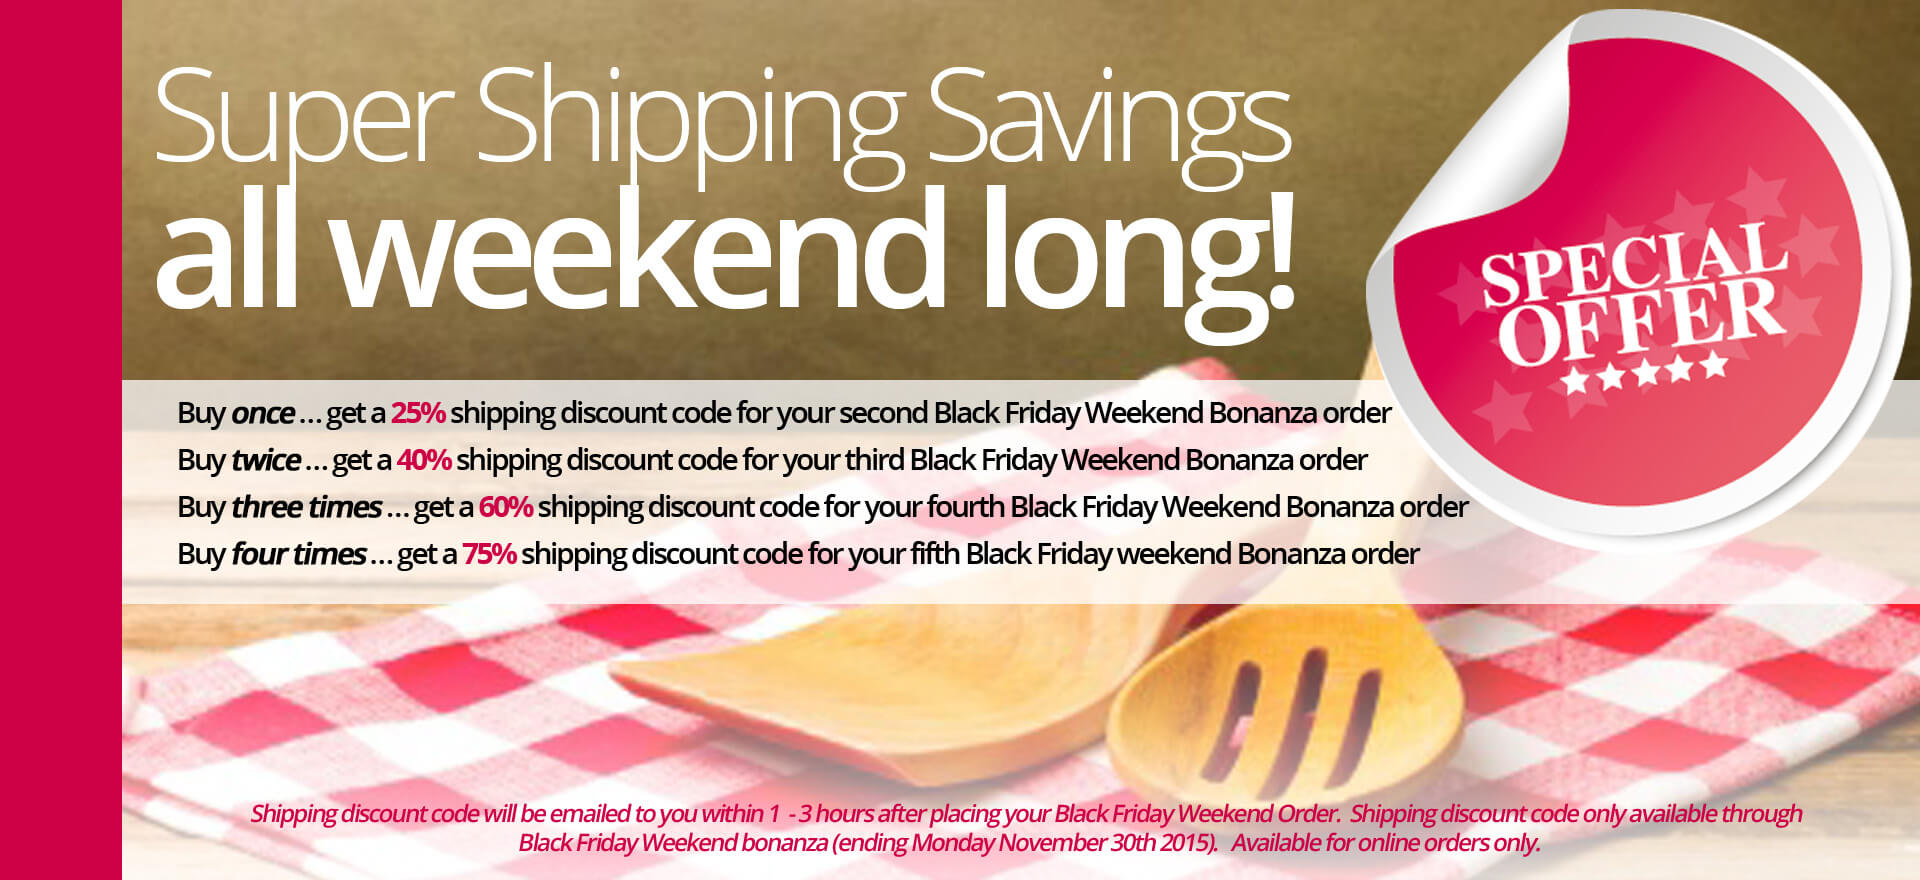 black-friday-special-shipping-offer-banner